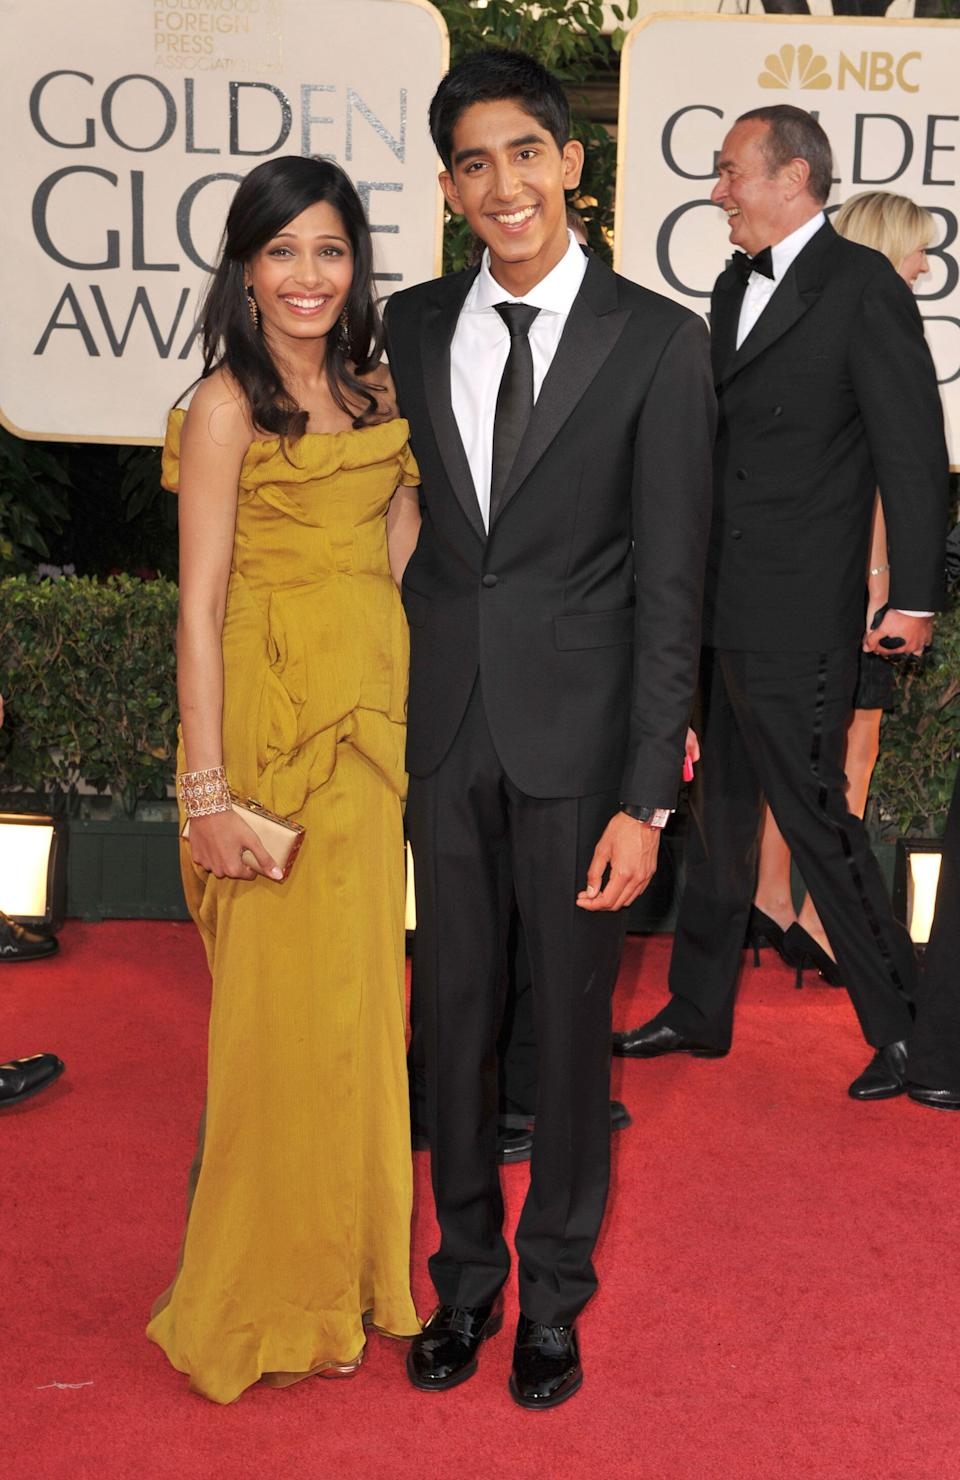 Patel and Freida Pinto at the 66th Annual Golden Globe Awards on Jan. 11, 2009, in Los Angeles.